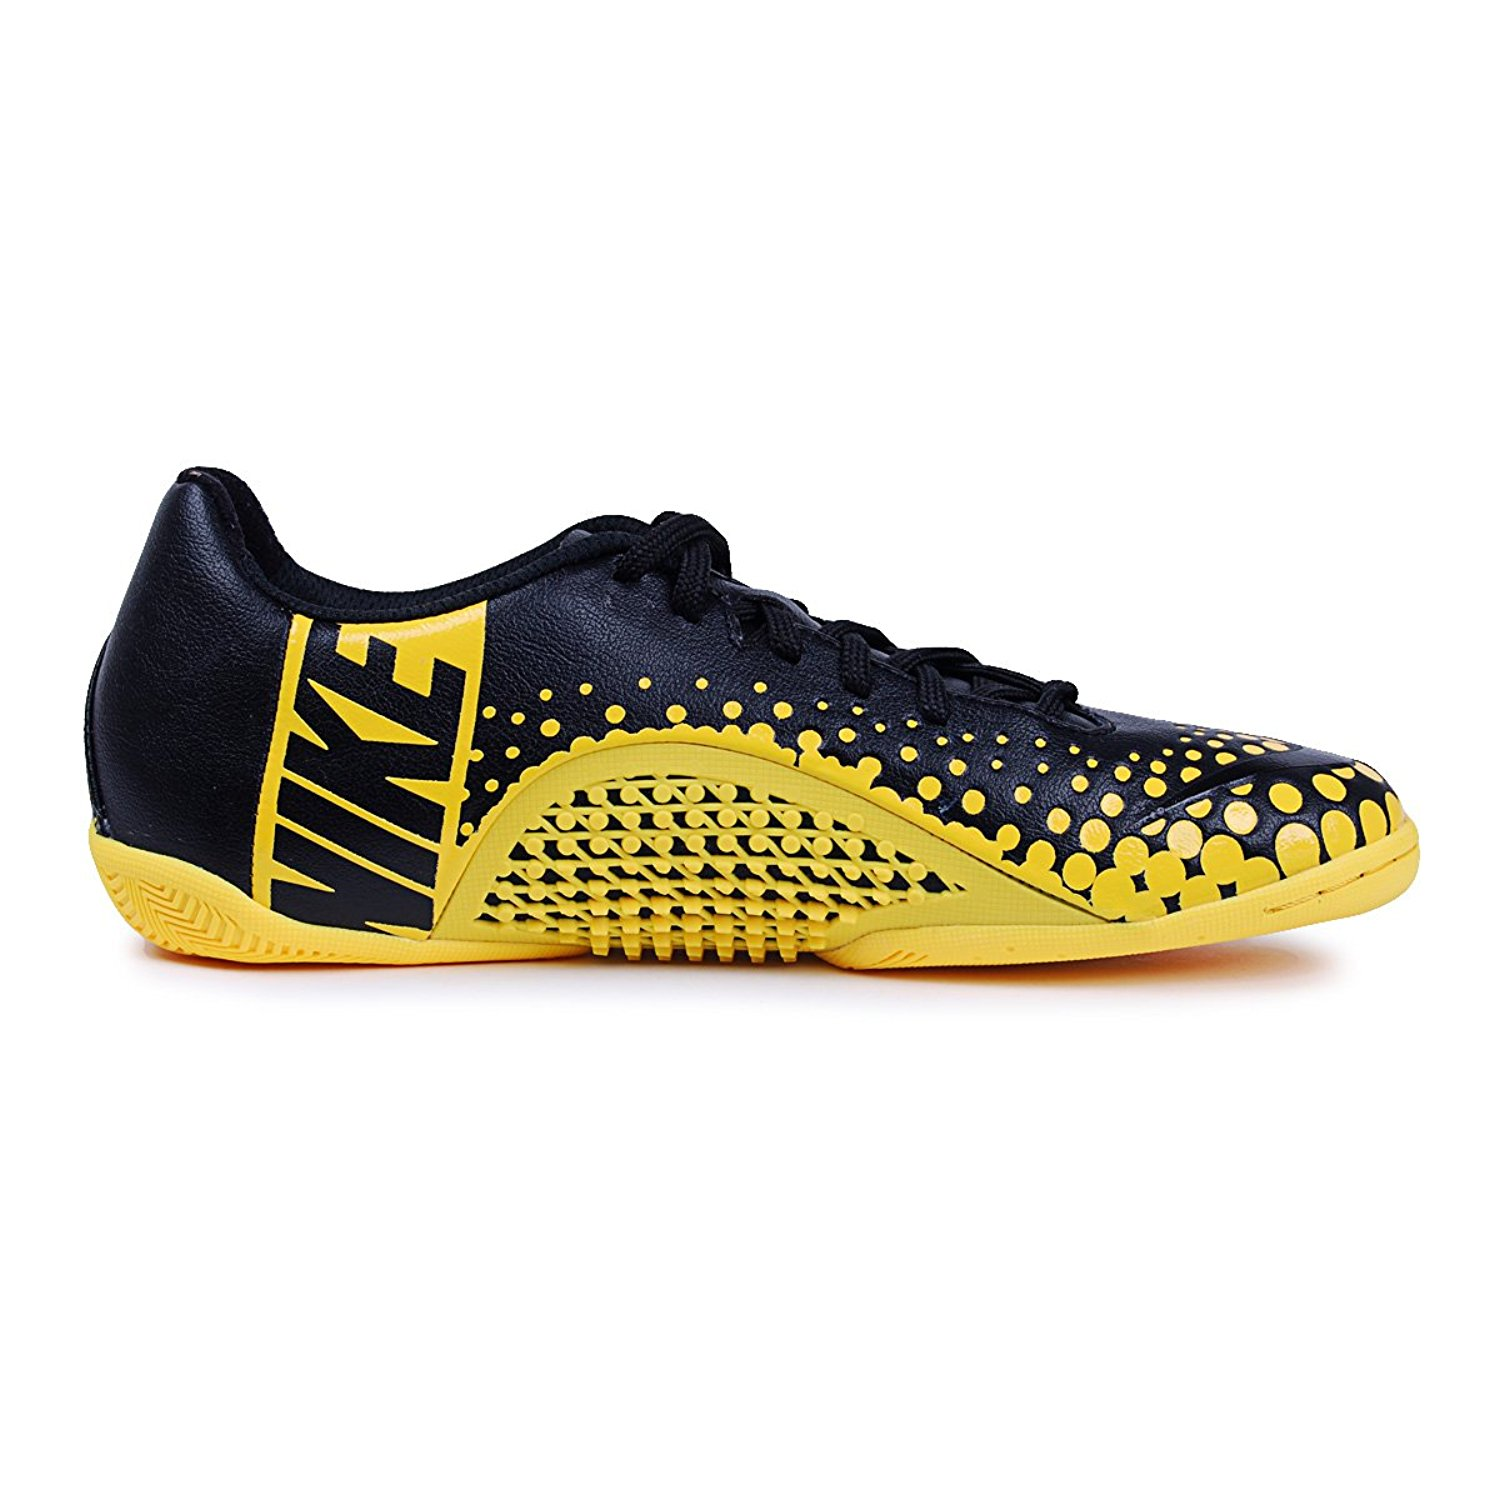 hot sale online f8484 7cd59 Get Quotations · NIKE5 ELASTICO FINALE INDOOR SOCCER SHOES (BLACK TOUR  YELLOW BLACK)